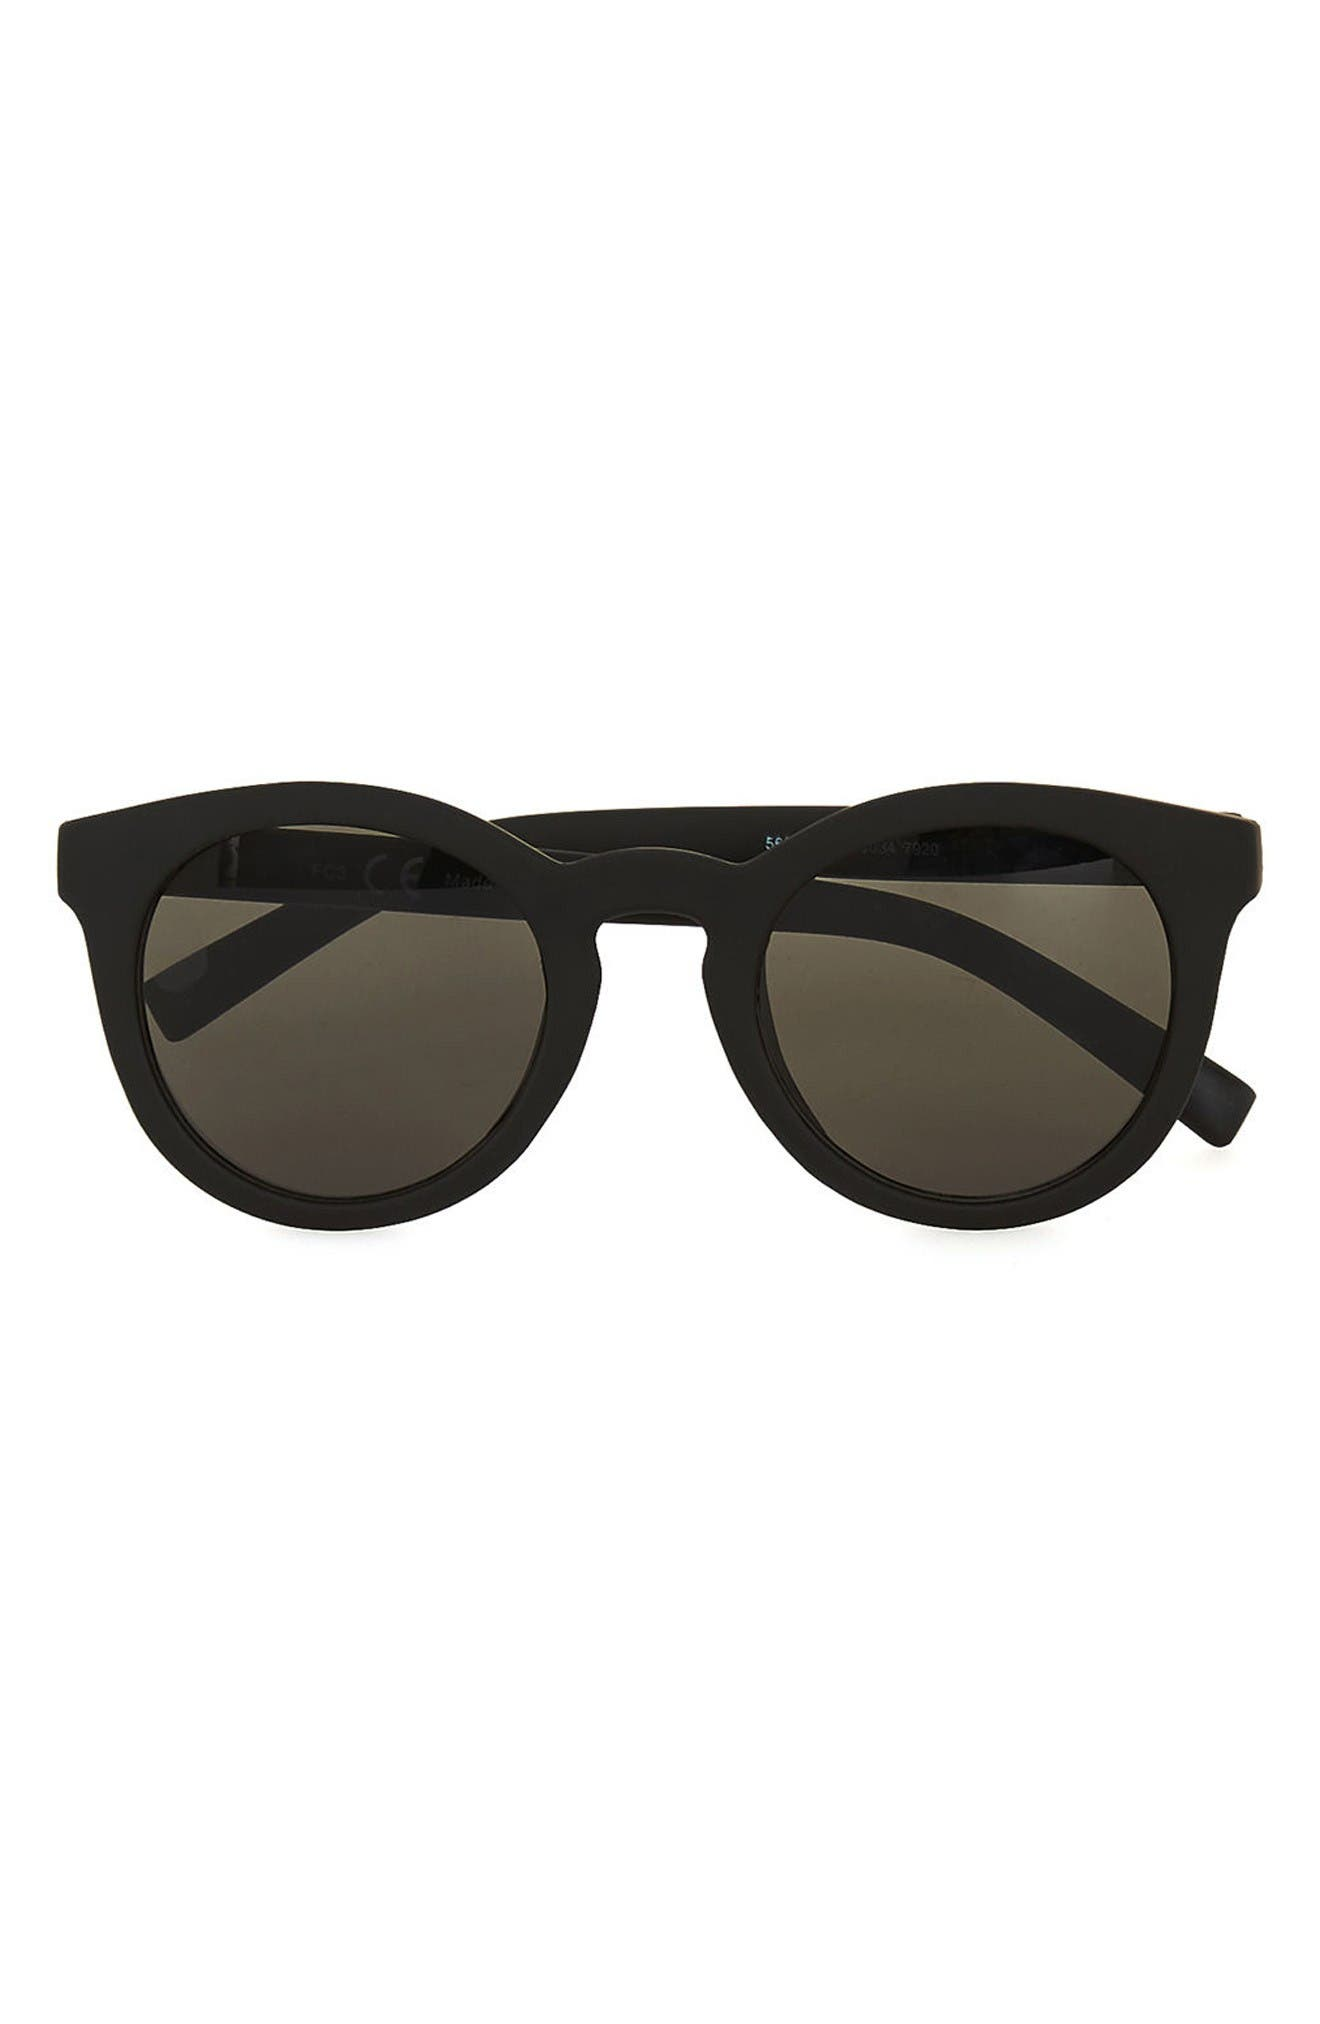 Main Image - Topman 46mm Rubberized Round Sunglasses